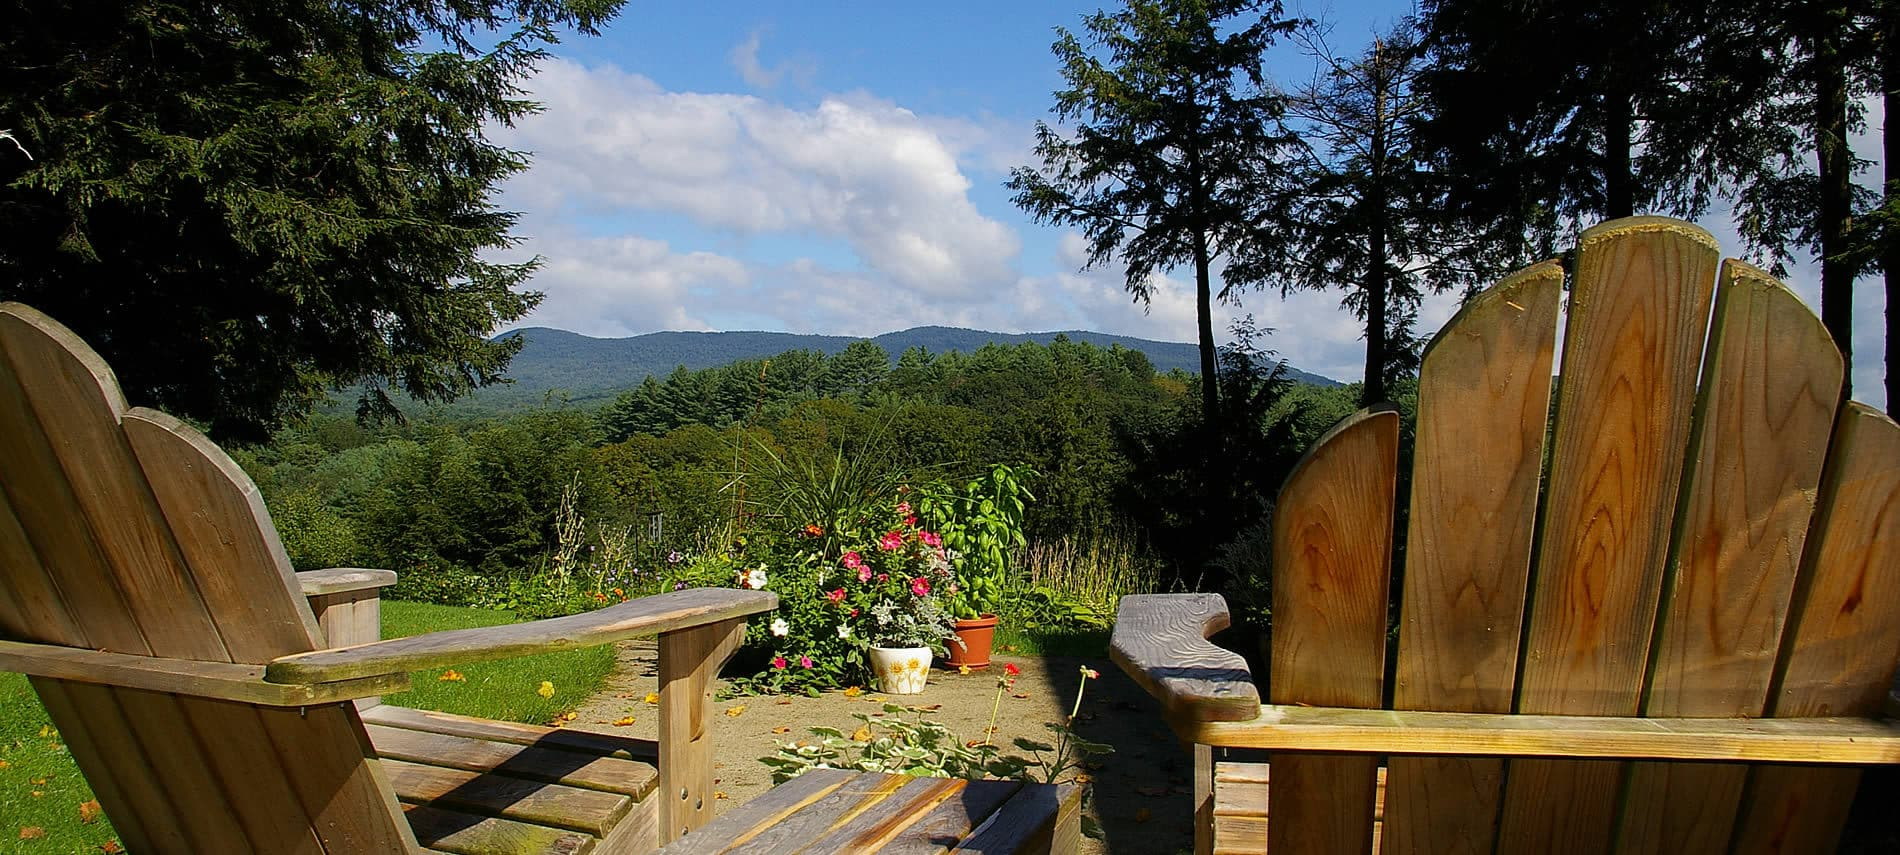 Two wooden Adirondack chairs looking toward the distant hills and trees amidst blue skies